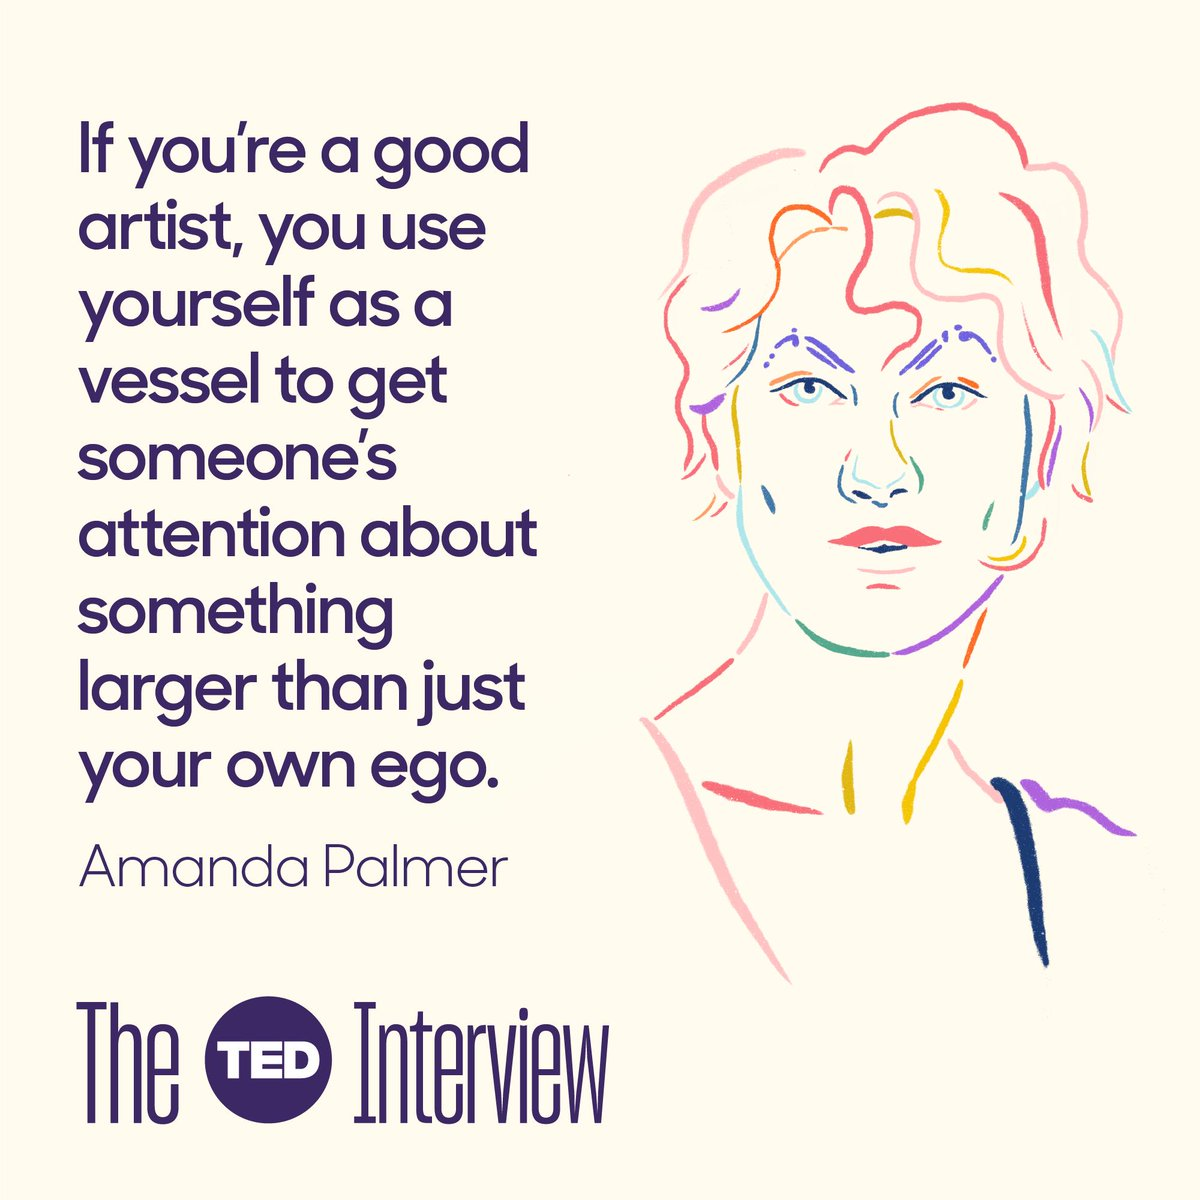 .@AmandaPalmer opens up about how she connects with her fans through her music. Learn more about one of the most unique voices in music on this week's episode of #TheTEDInterview. Listen on @Stitcher: http://t.ted.com/U9FFdUe